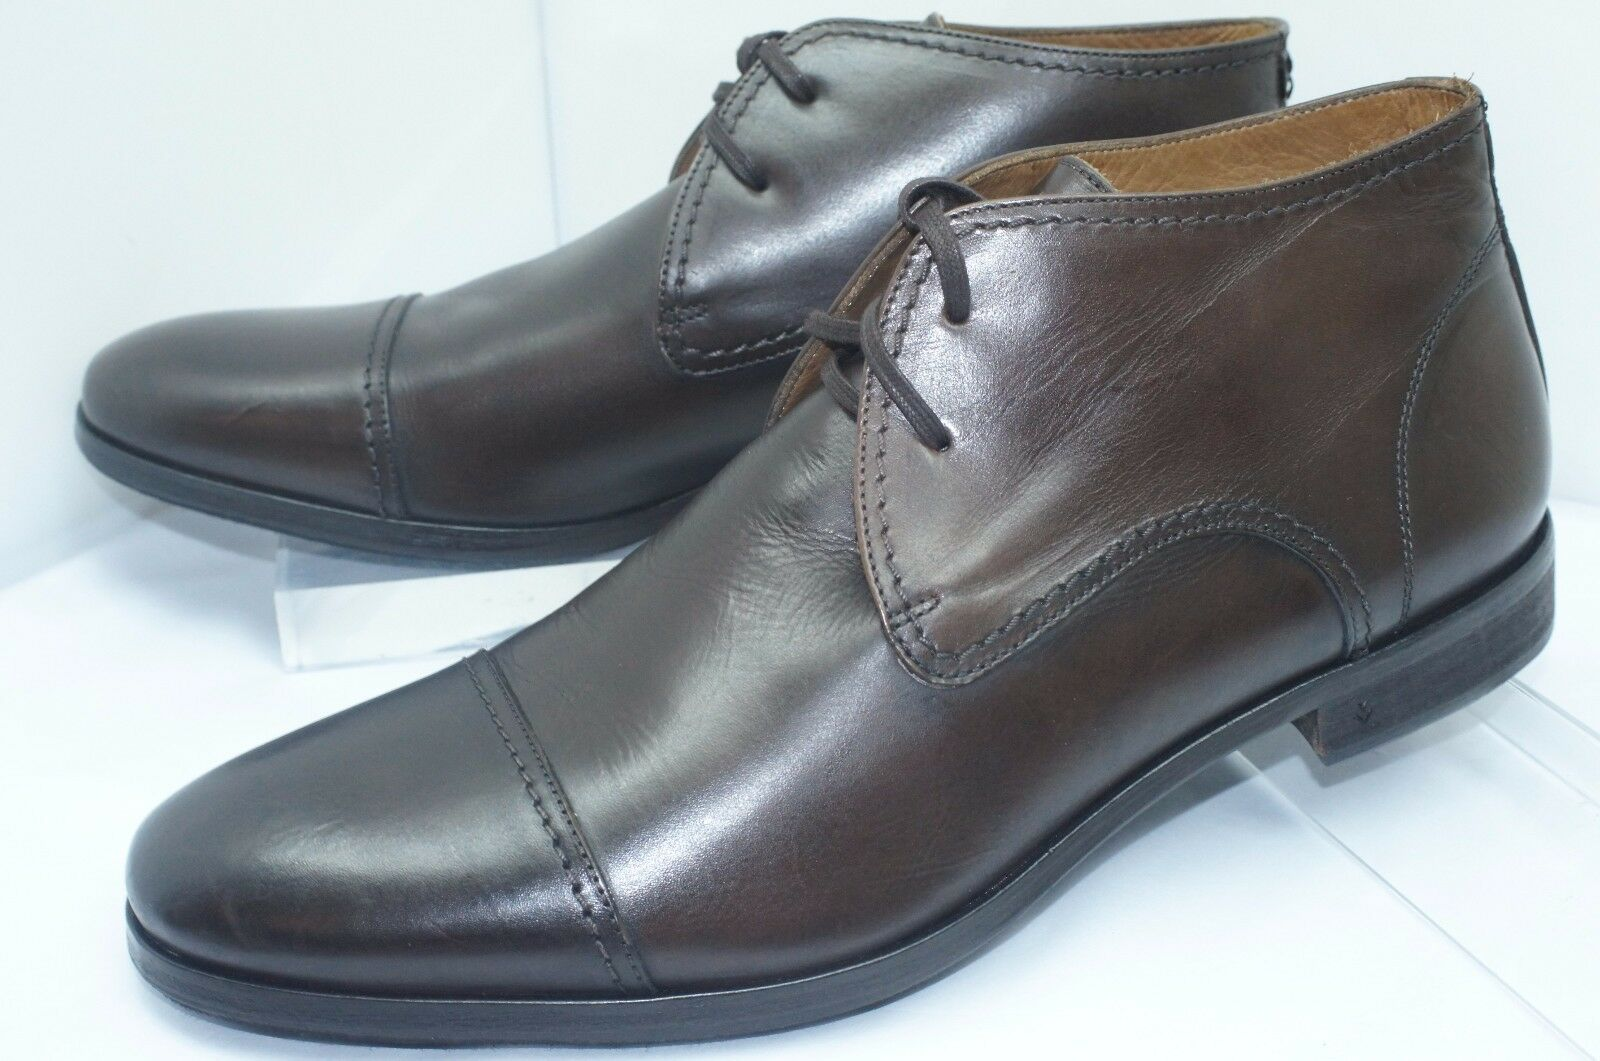 New John Varvatos Men's Boots Ago Chukka shoes Size 12 Brown Leather